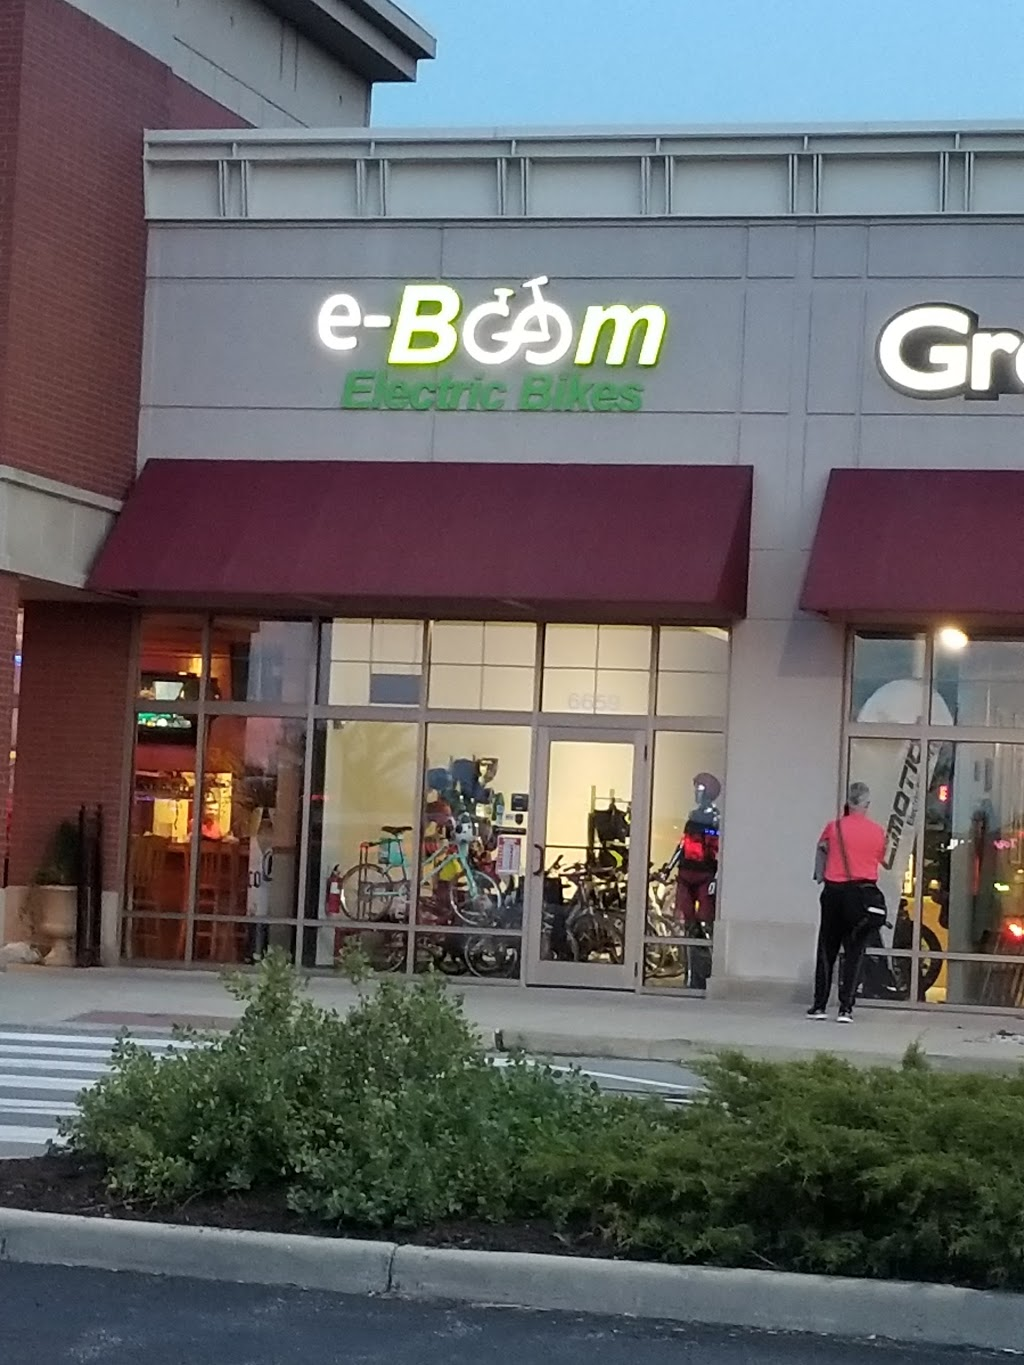 eBoom Electric Bikes - bicycle store  | Photo 1 of 10 | Address: 6 S Main St, Whitestown, IN 46075, USA | Phone: (317) 340-4156